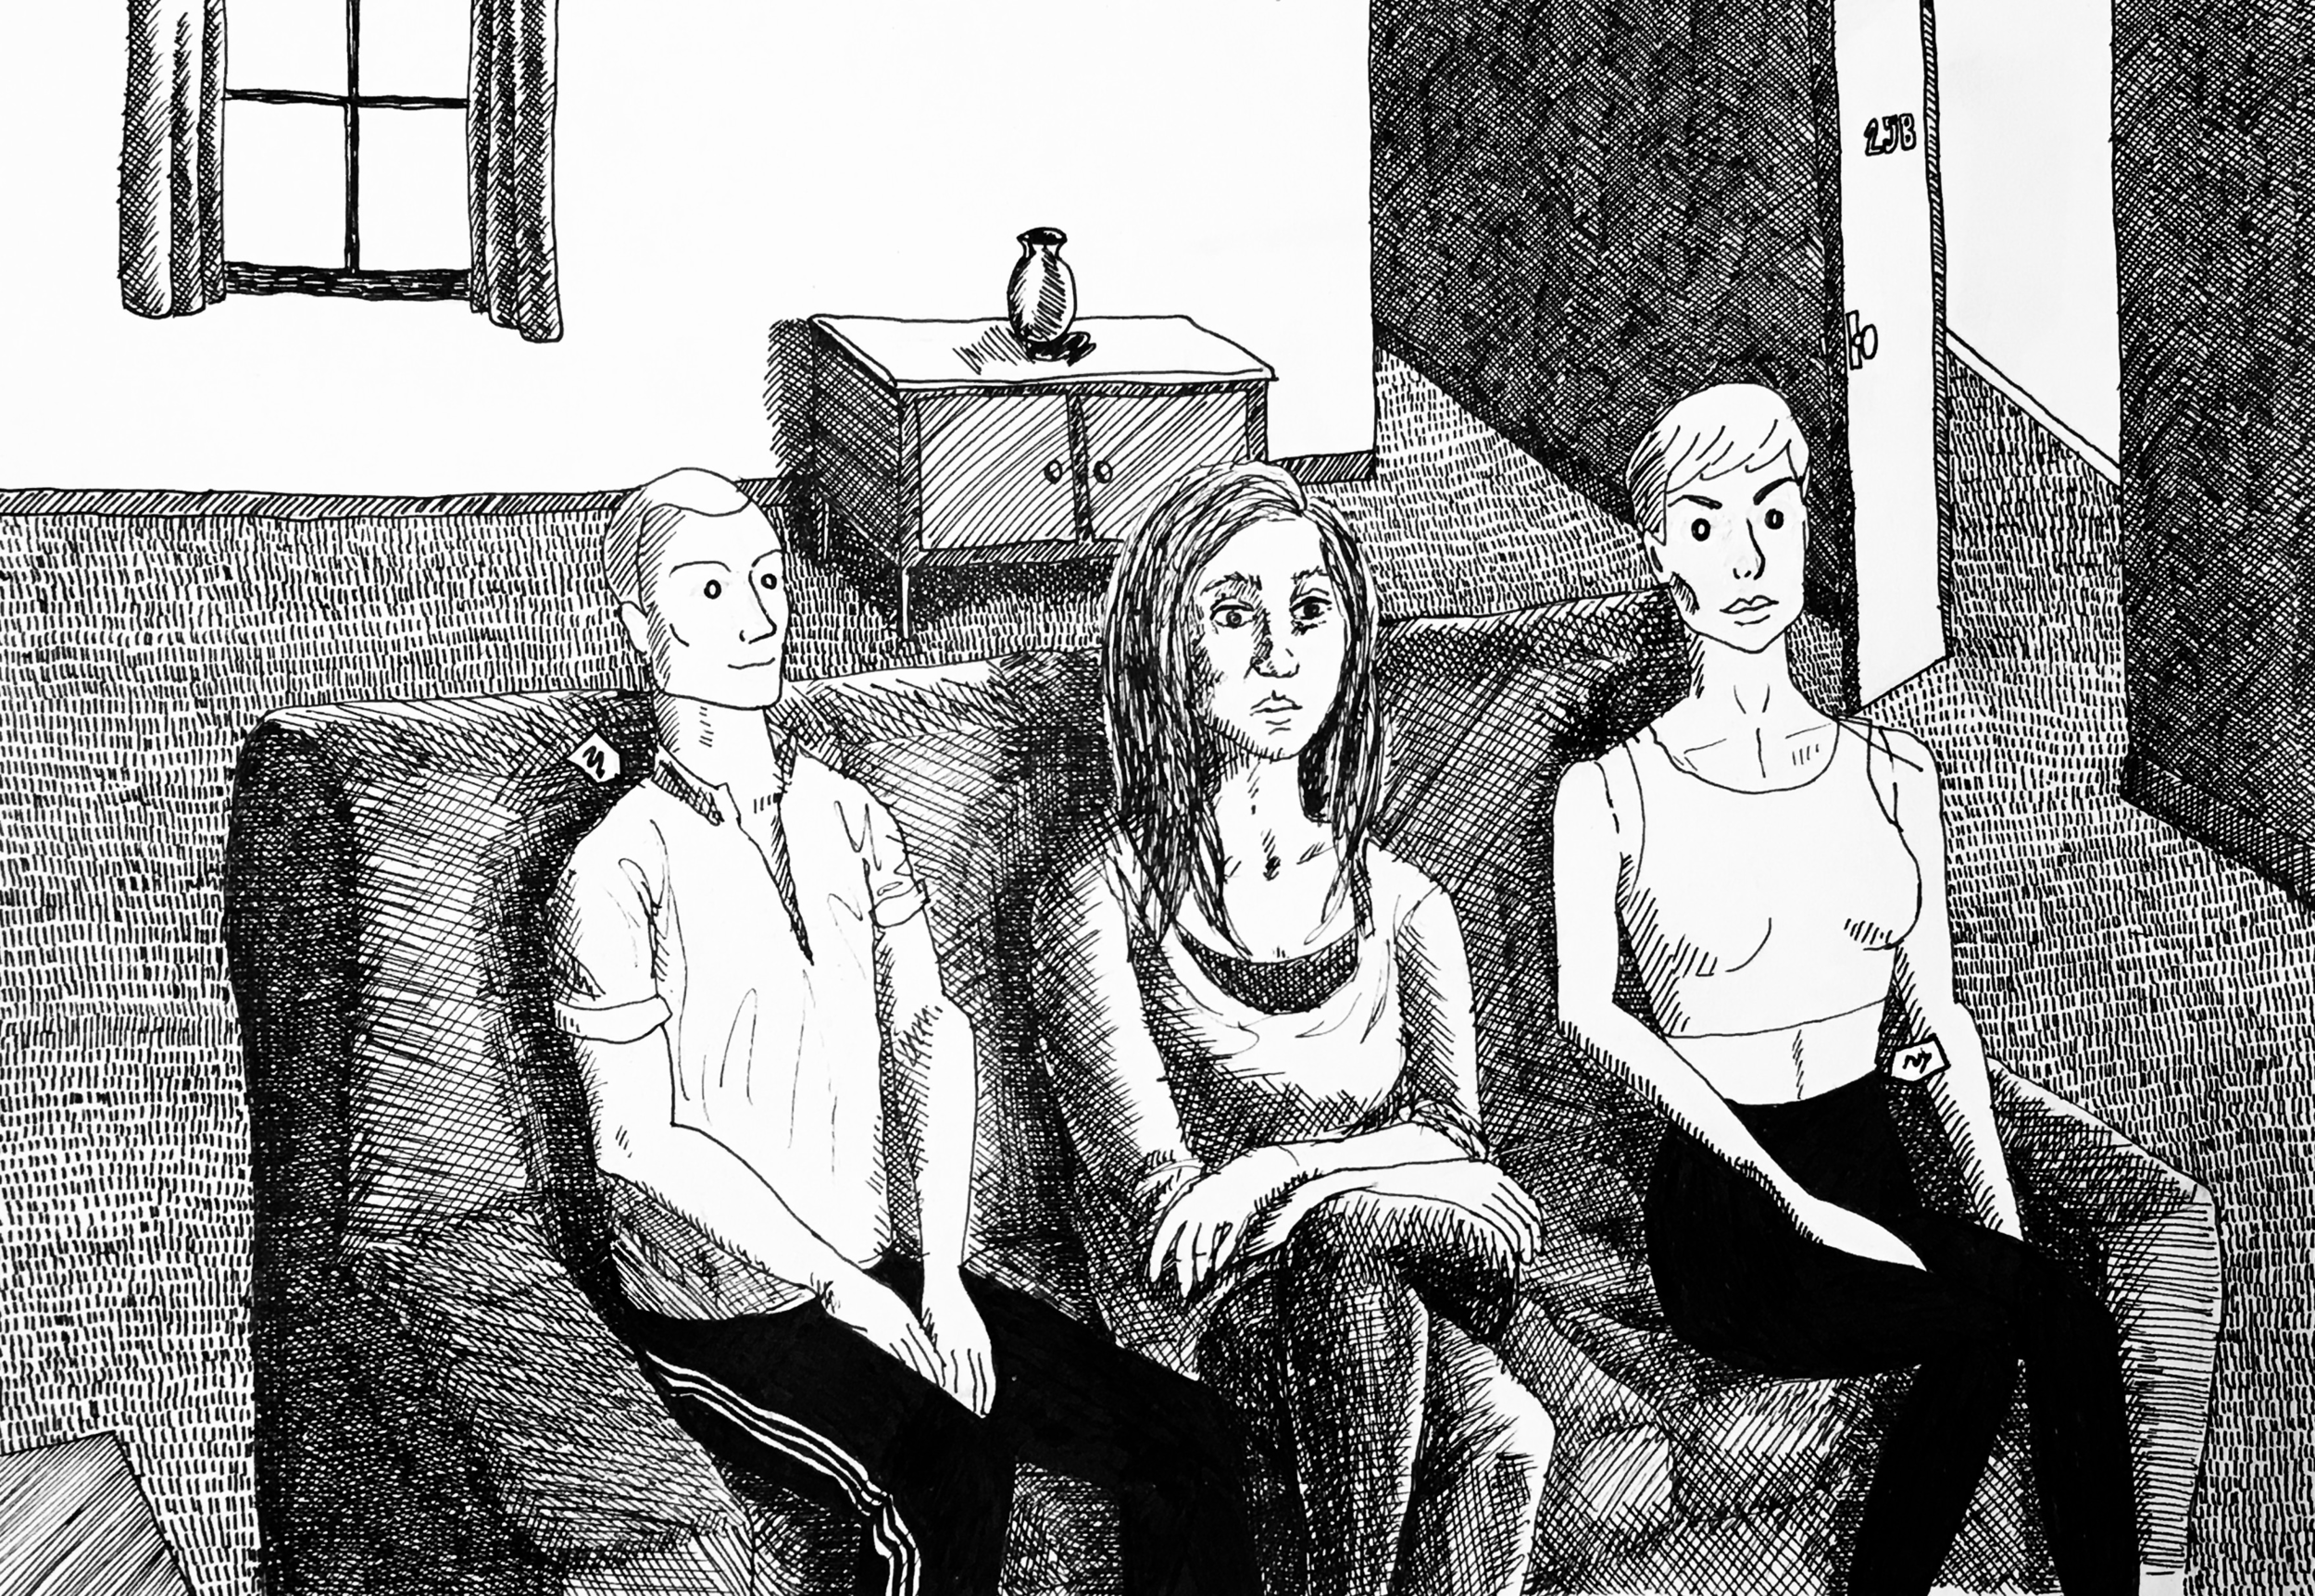 Our lead Charlotte with mannequins, in her apartment. Drawn by Producer Carol Brandt